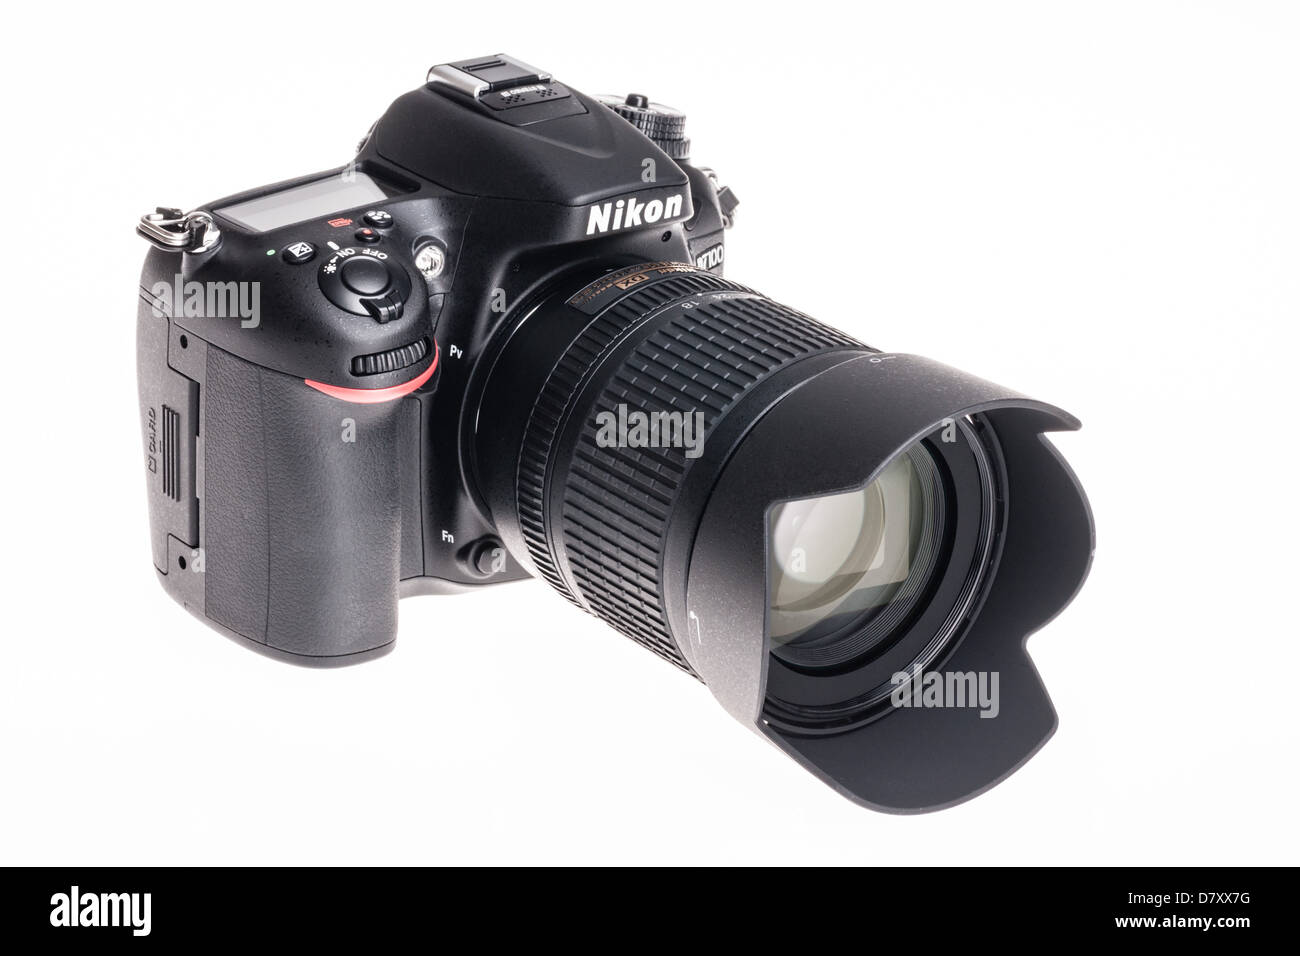 Nikon D7100 digital SLR - camera with 18-105mm lens. - Stock Image